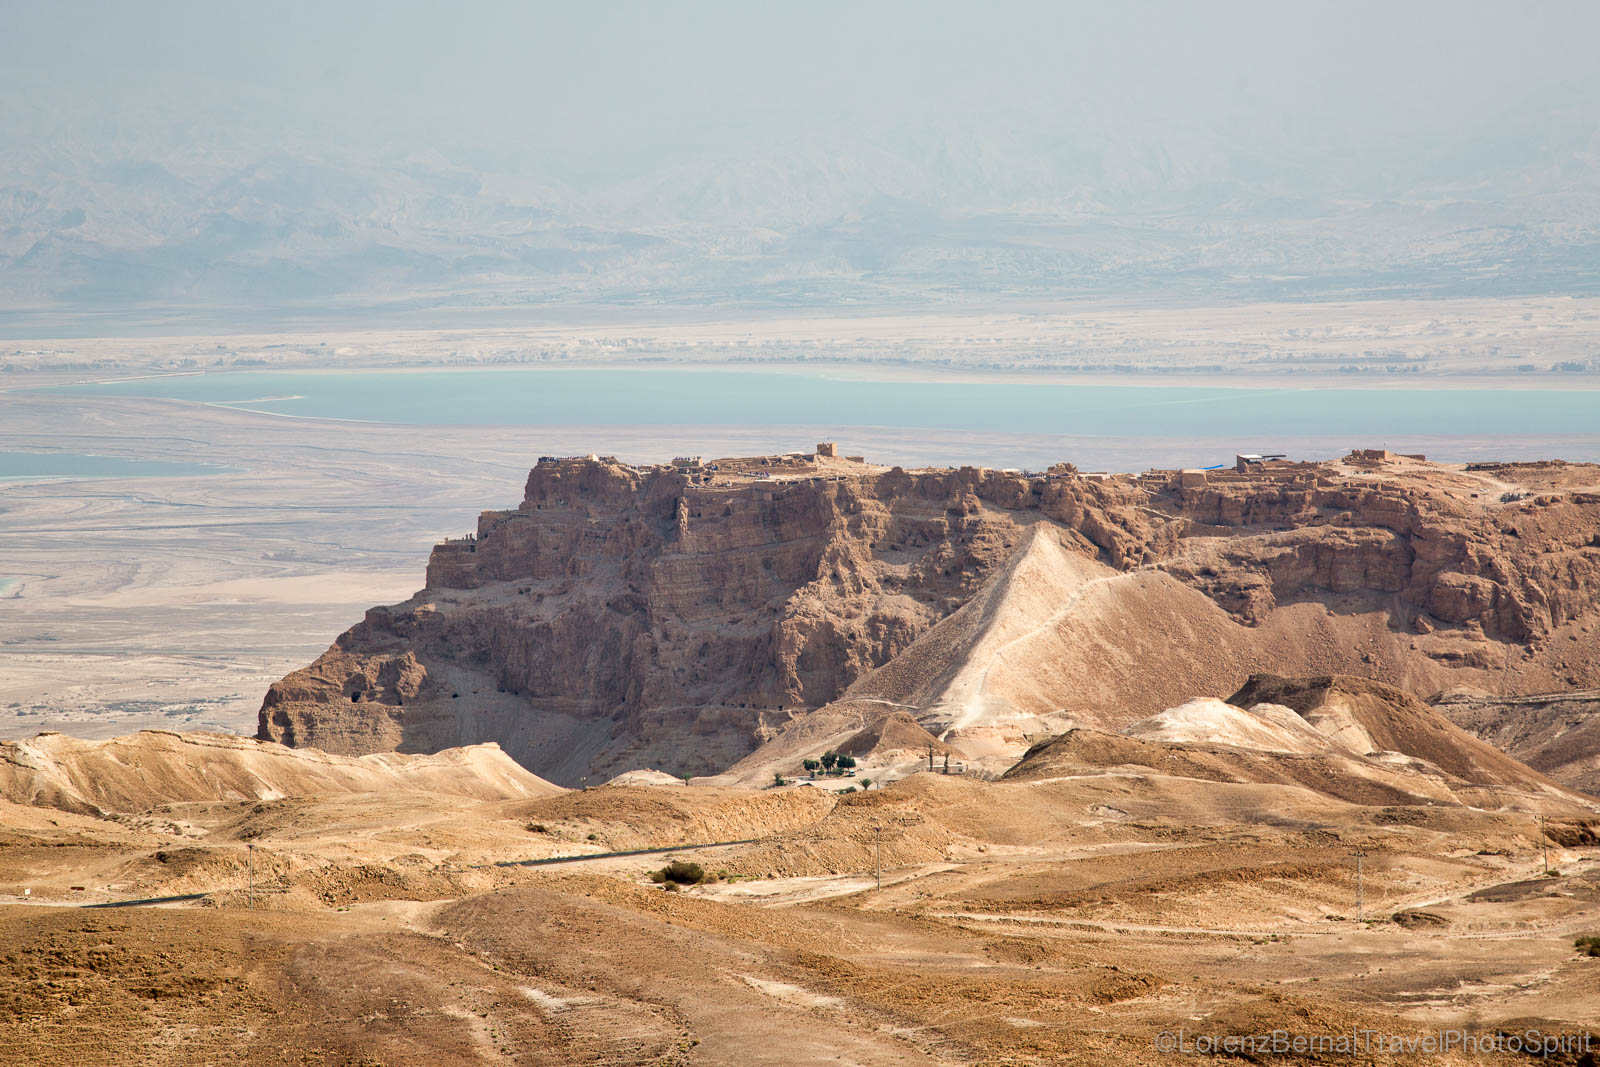 The impressive plateau where the fortress of Masada was built, dominating the whole valley and overlooking the Dead Sea, Judean Desert, Jerusalem.